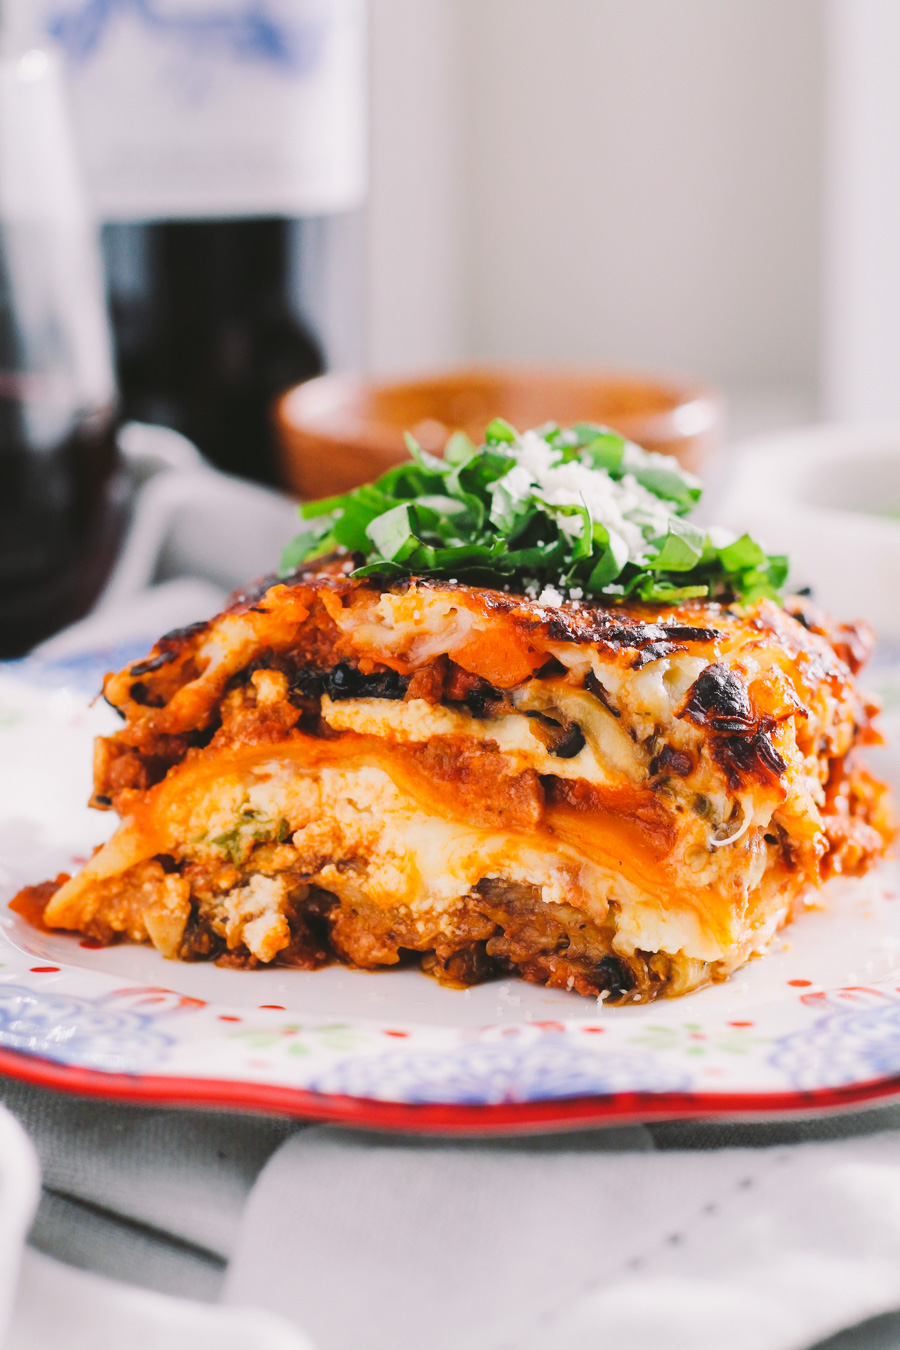 best ever eggplant lasagna via playswellwithbutter | with its layers of hearty bolognese, creamy ricotta, melty mozzarella, & grilled eggplant, eggplant lasagna the perfect make-ahead dish for a busy weeknight. with less than one lasagna noodle per serving enjoy all the best flavors of lasagna with none of the guilt.